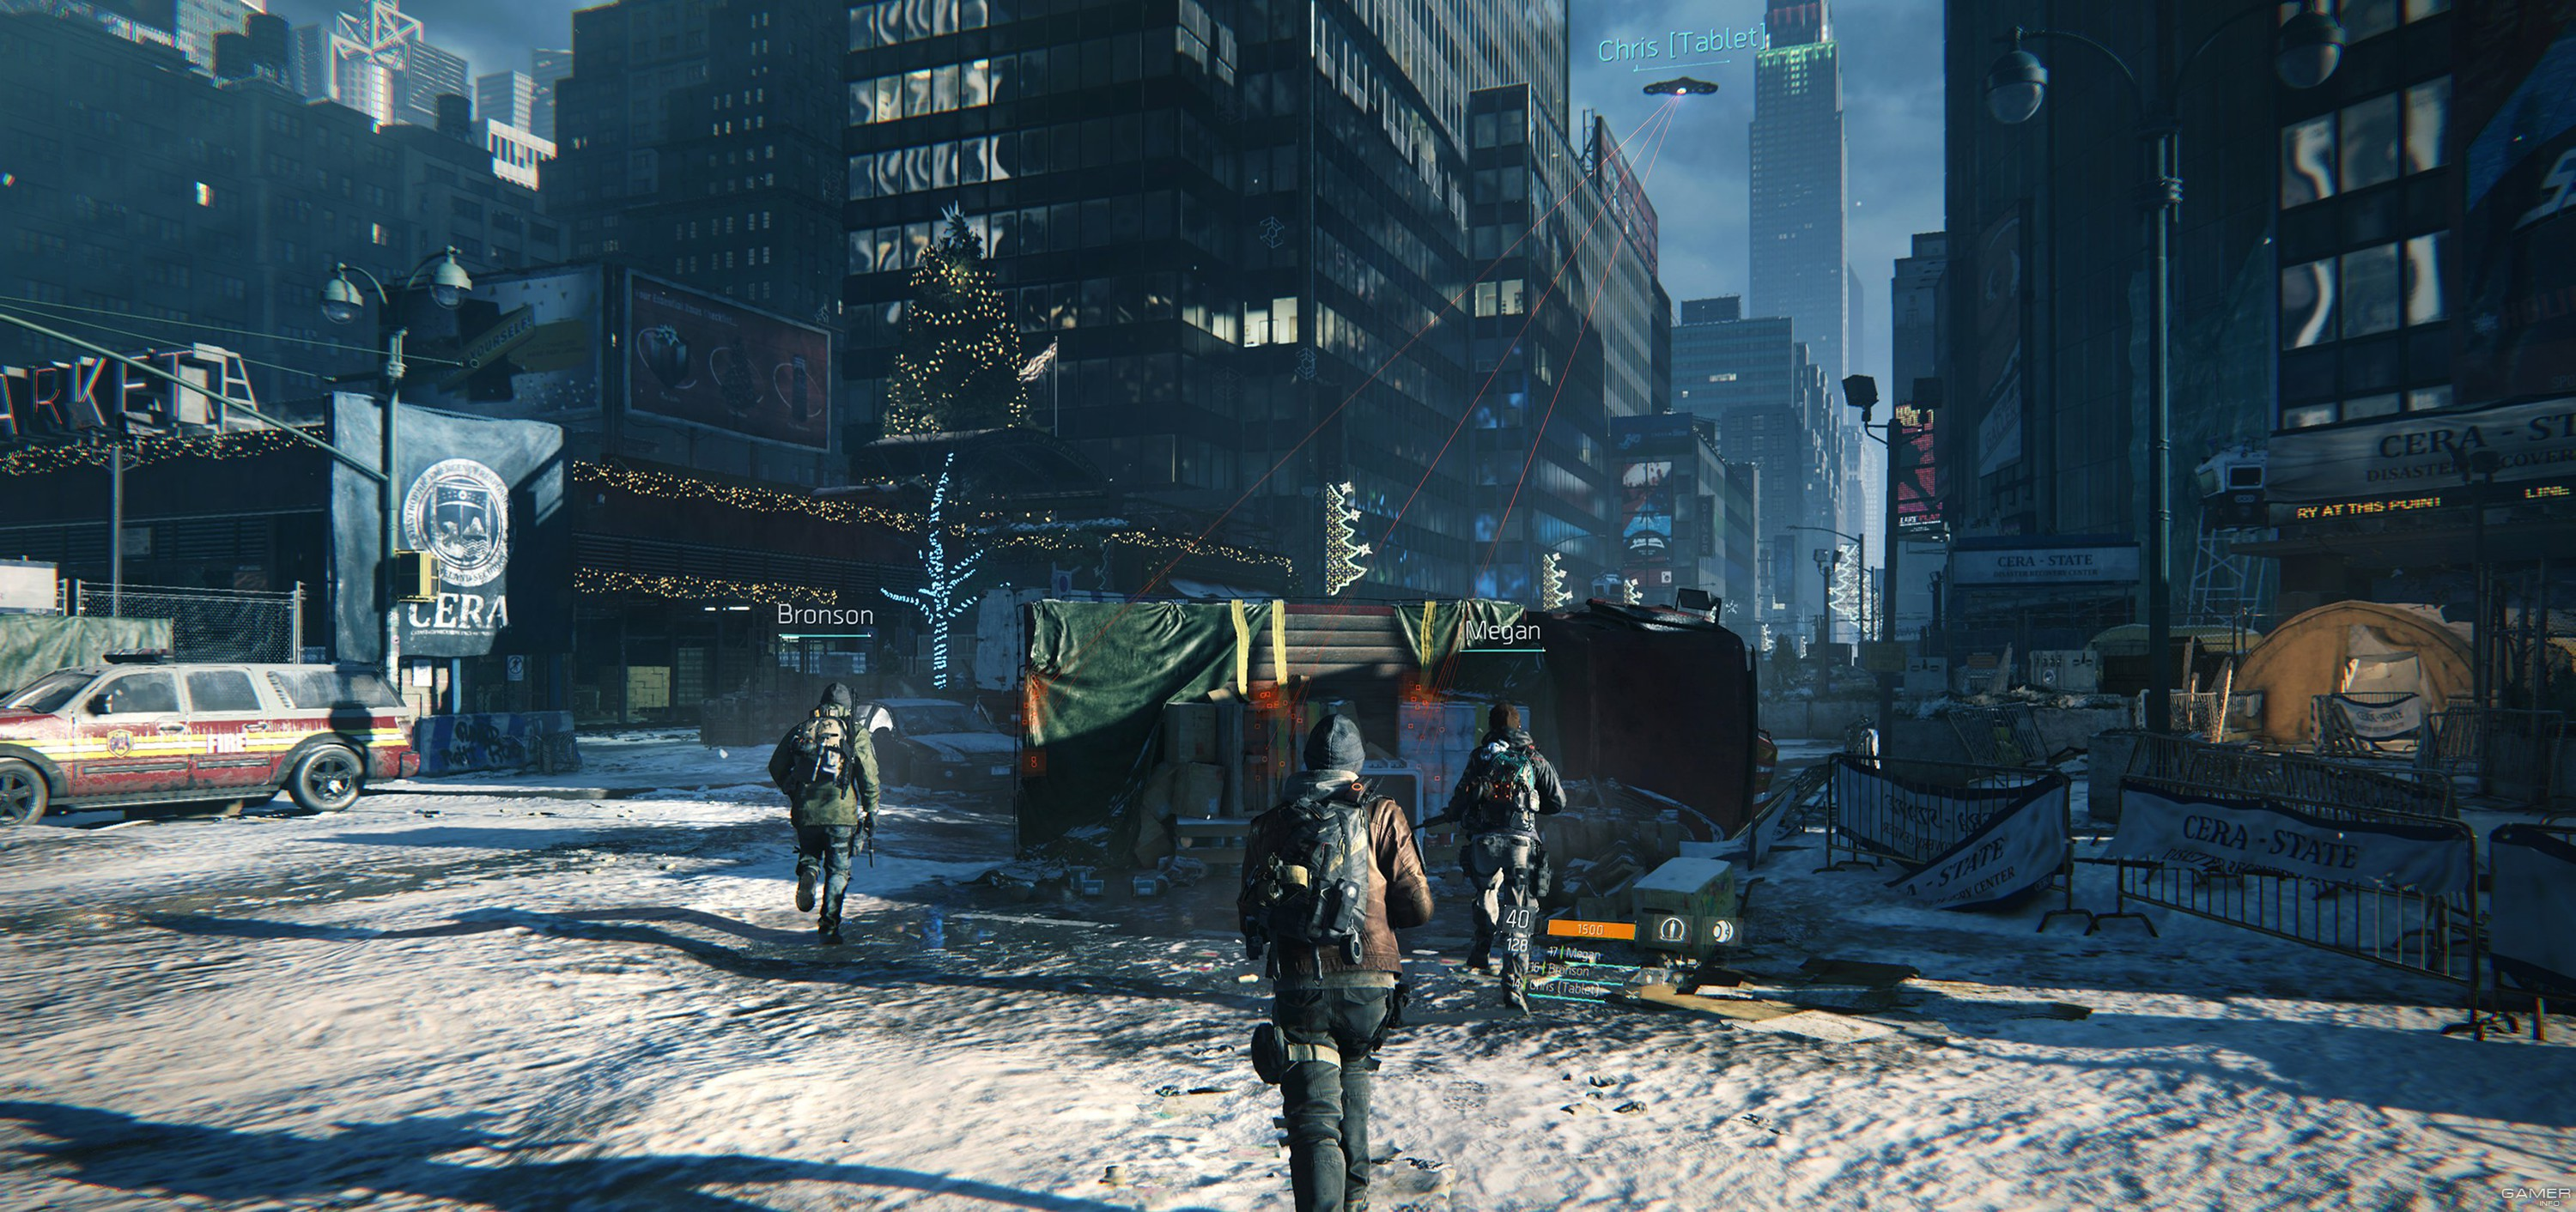 Tom Clancy's The Division (08.03.2016) выход, игры, проекты